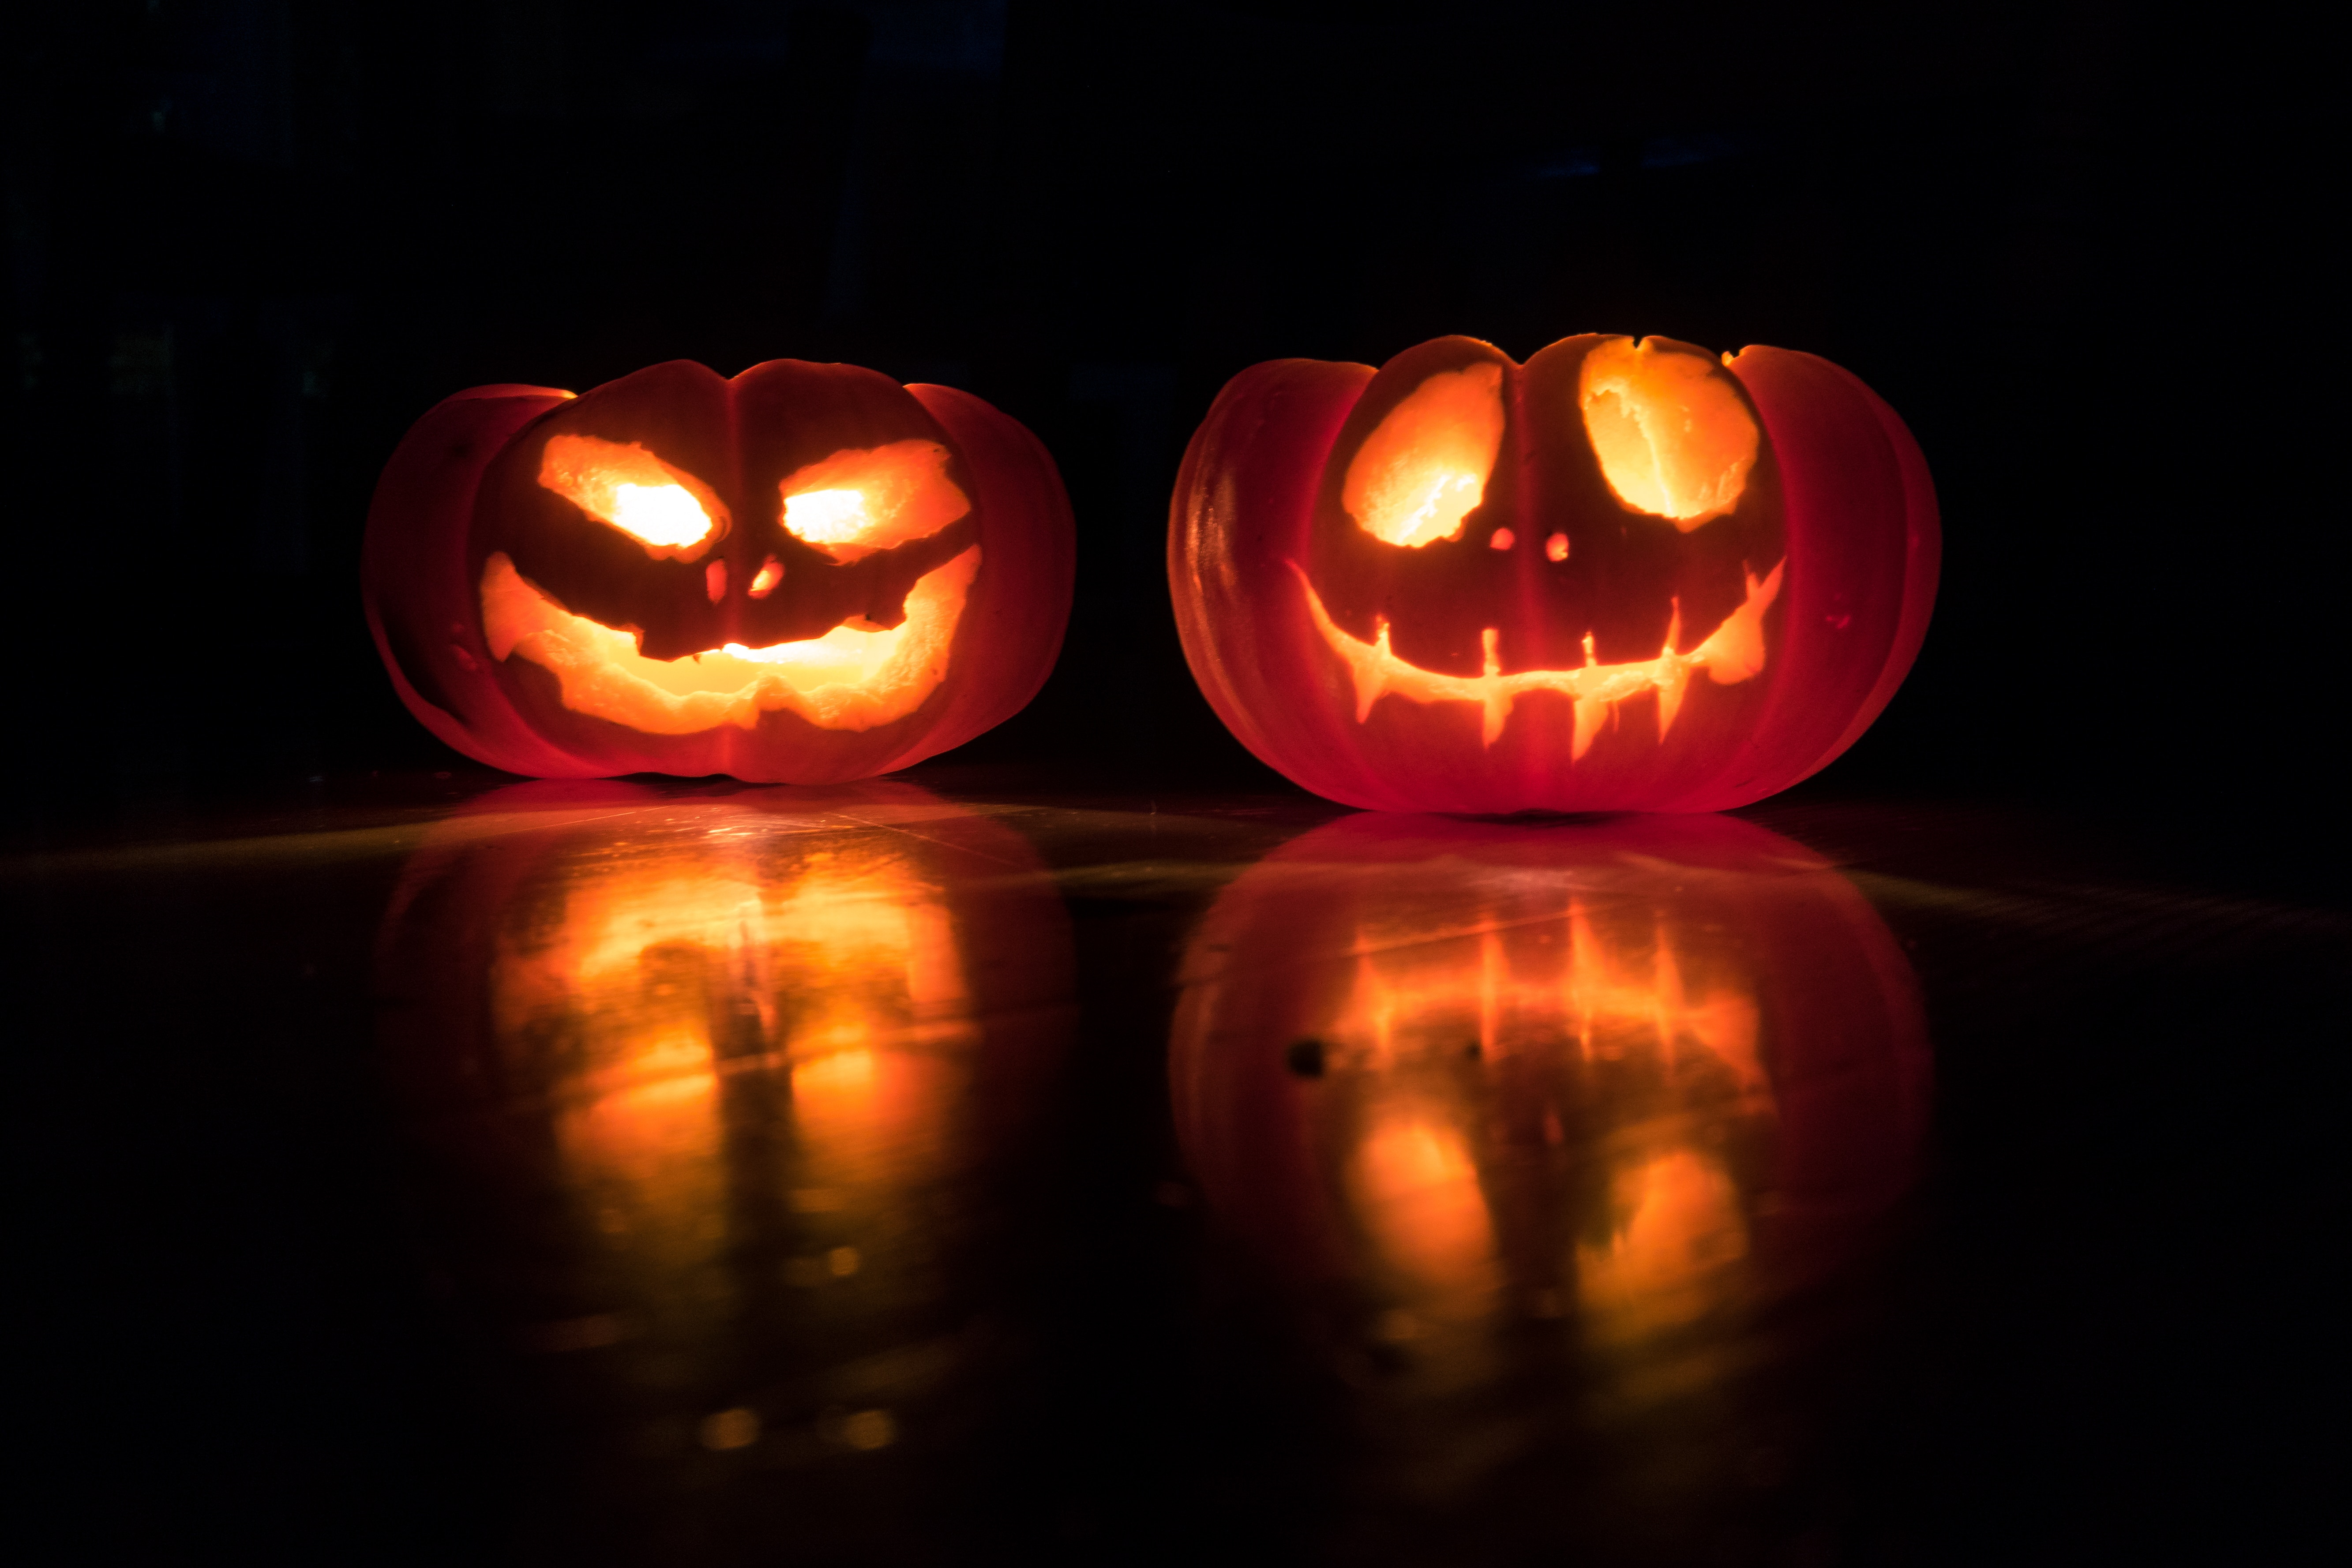 halloween: a celebration of evil | united church of god